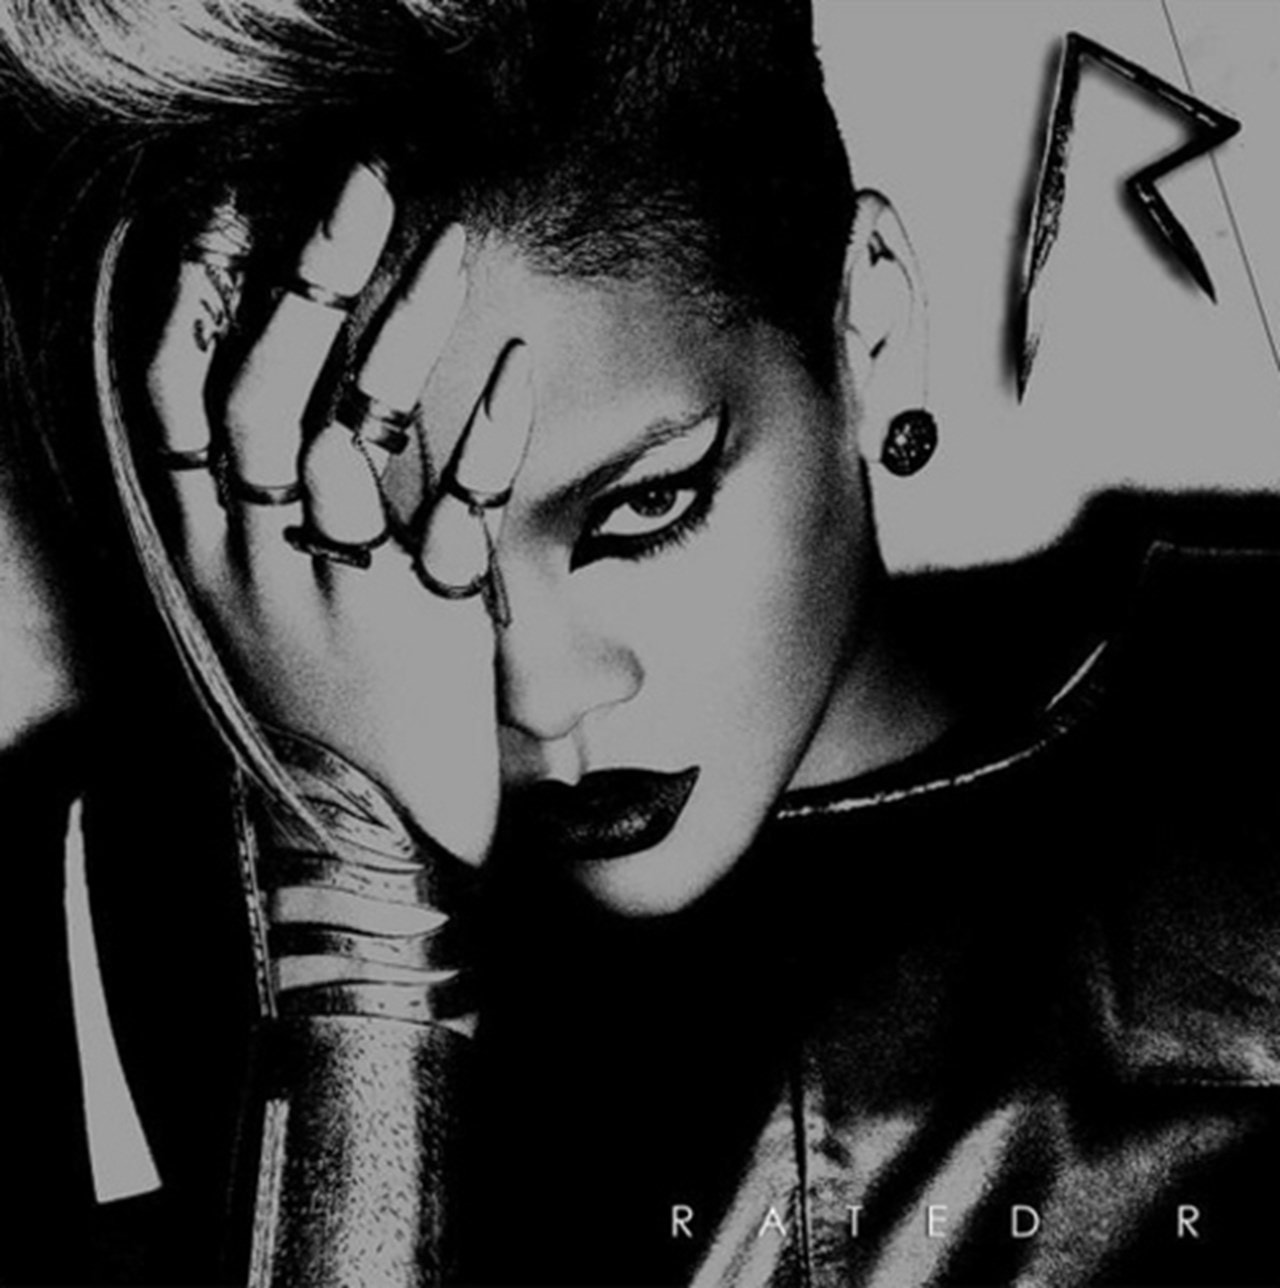 Rated R - 1